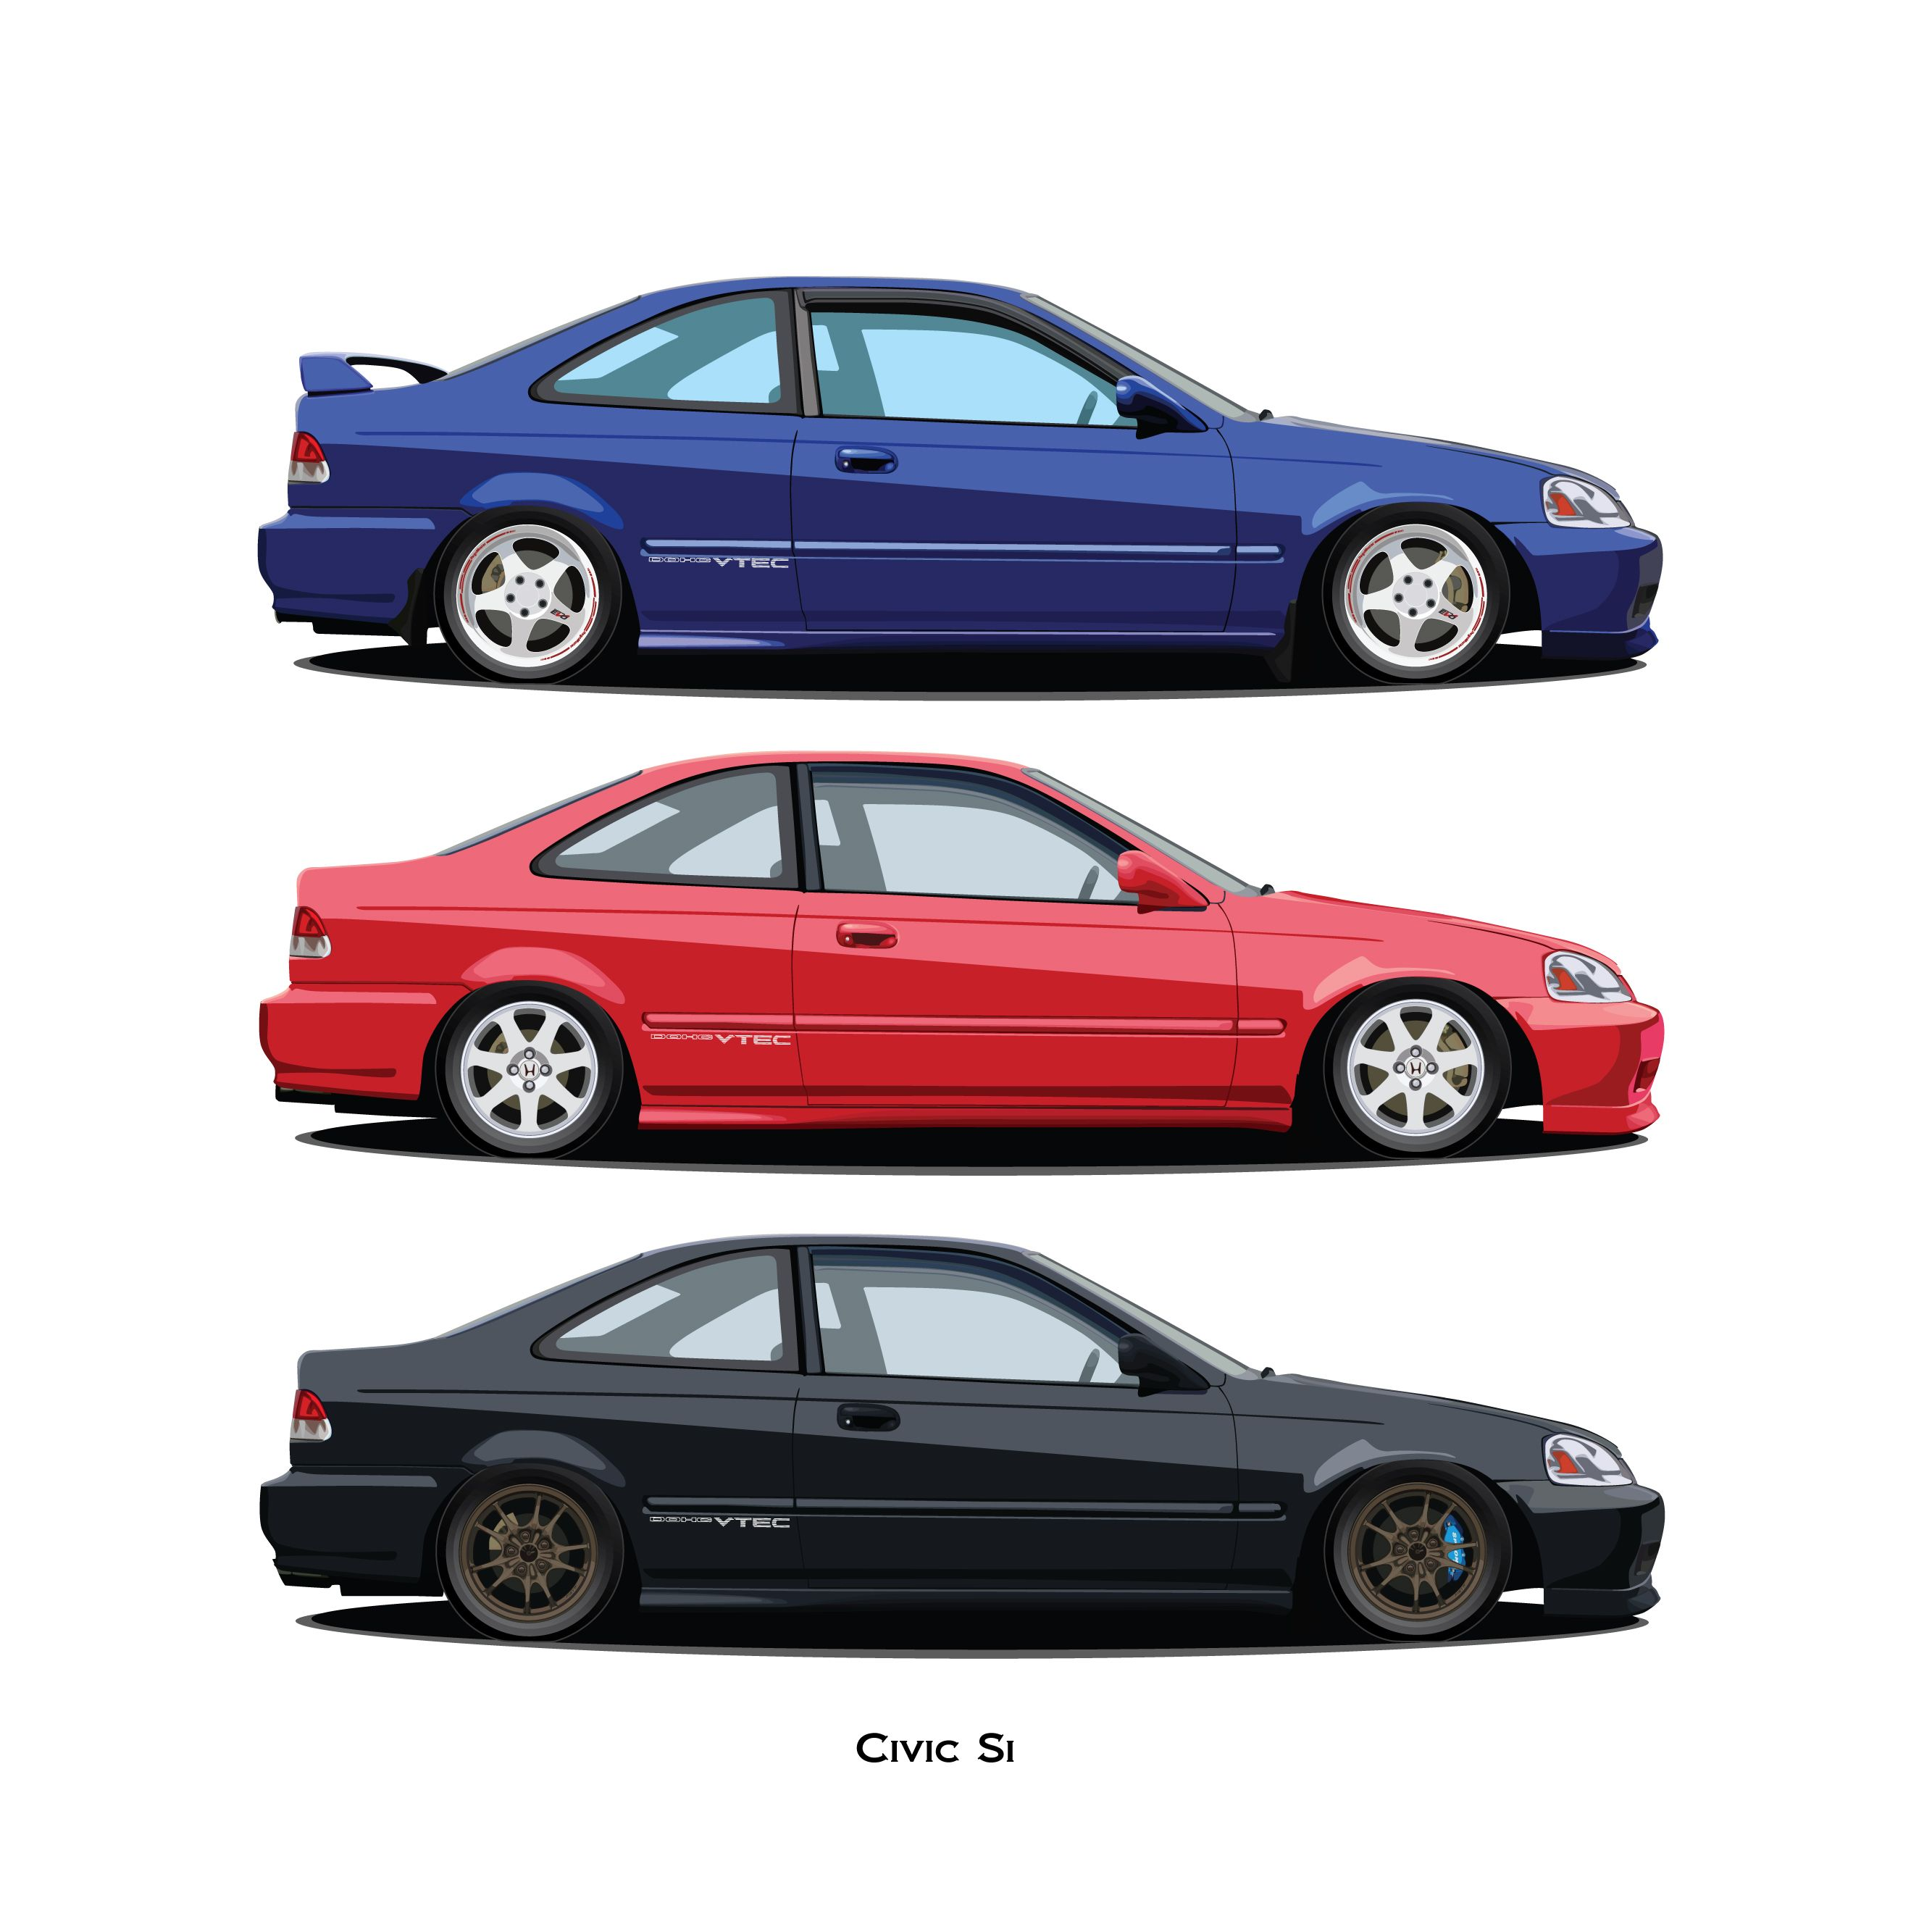 1999 Honda Civic Si And Friends Print U2013 J7Artwork